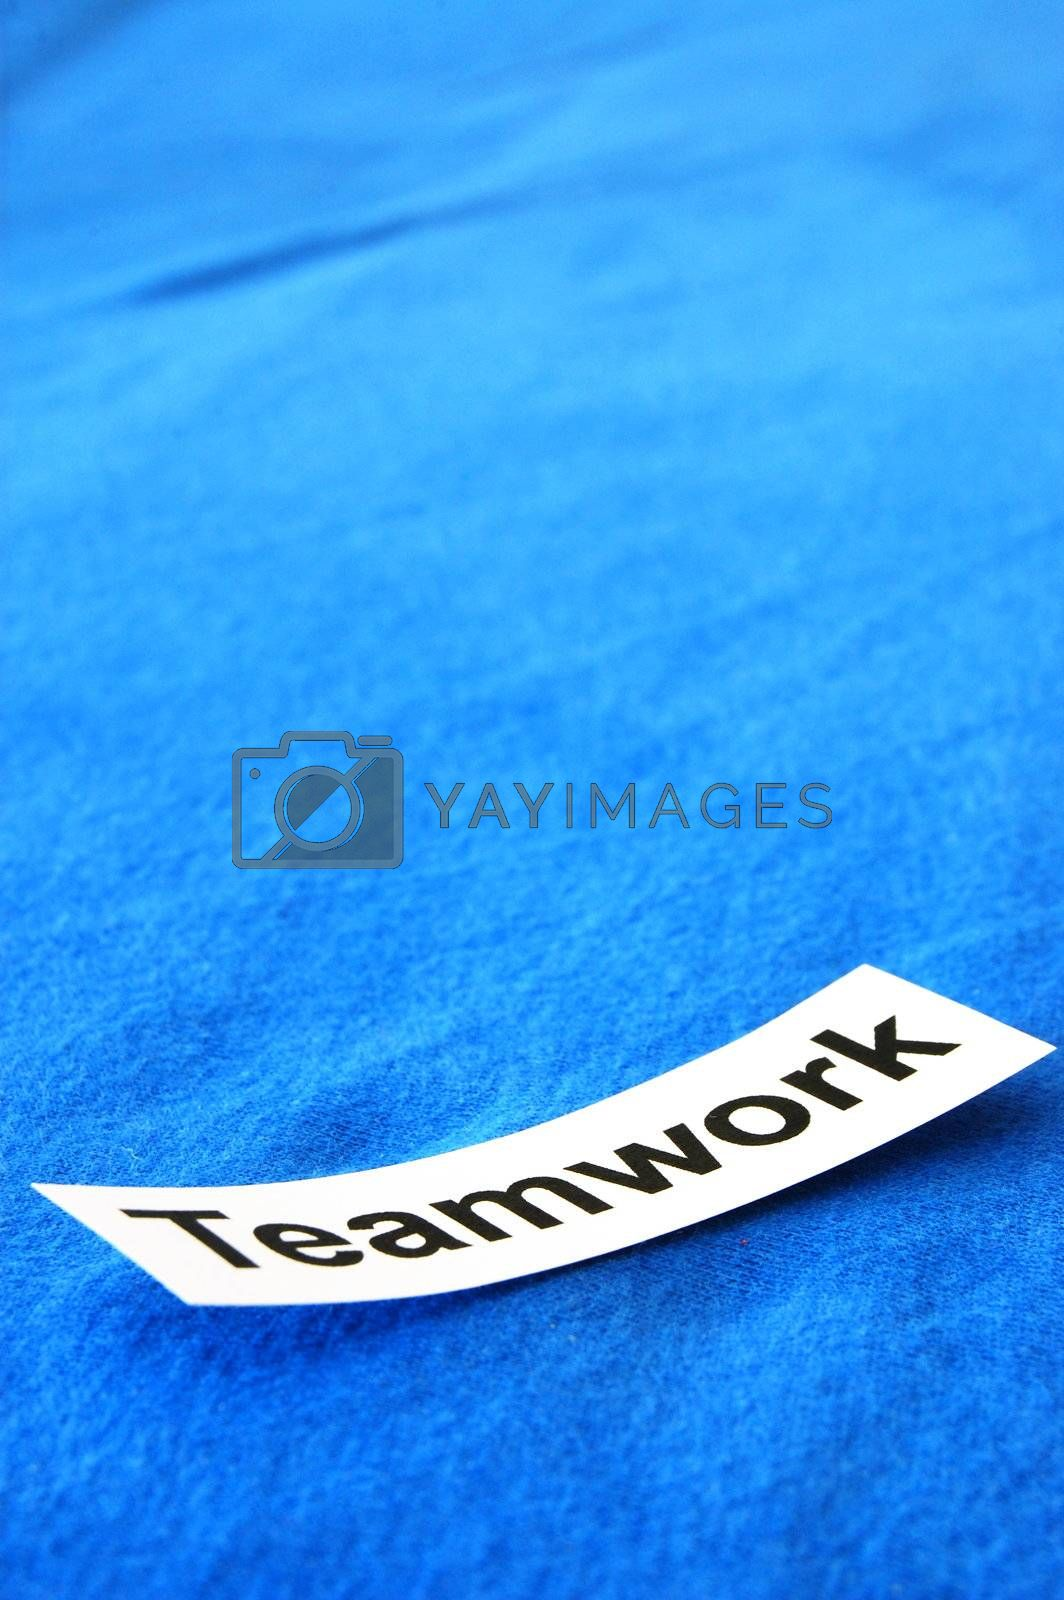 team or teamwork concept with blank space for text